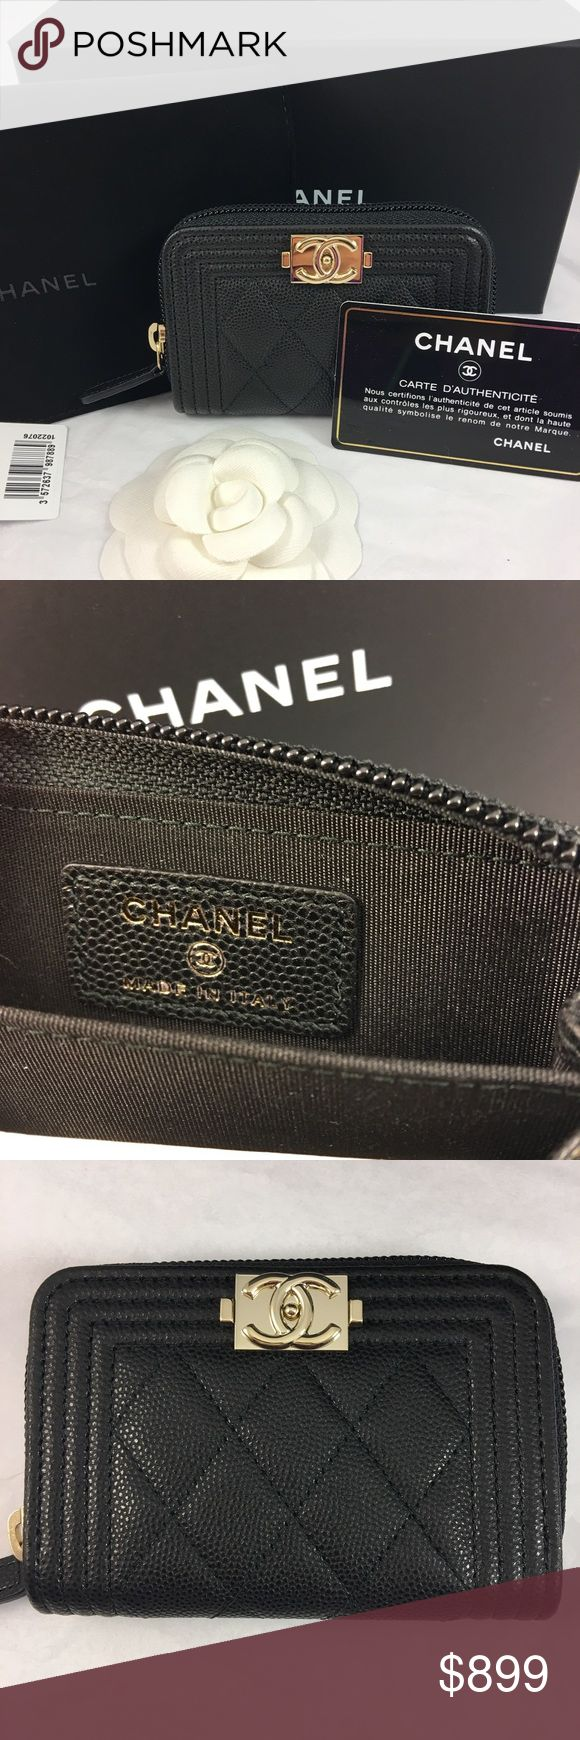 BNWT Chanel Boy Small Wallet in Black Caviar Guaranteed AUTHENTIC Brand New Chanel Boy Zip Around O Coin Purse, Card Holder in Black Caviar Leather with Gold Hardware.  Comes with Chanel box, Velvet dustbag, care booklet, Authenticity card and tag.  Receipt upon request. Feel free to ask questions and more photos for serious inquiries.  No trade please.  Ships ASAP! CHANEL Bags Wallets